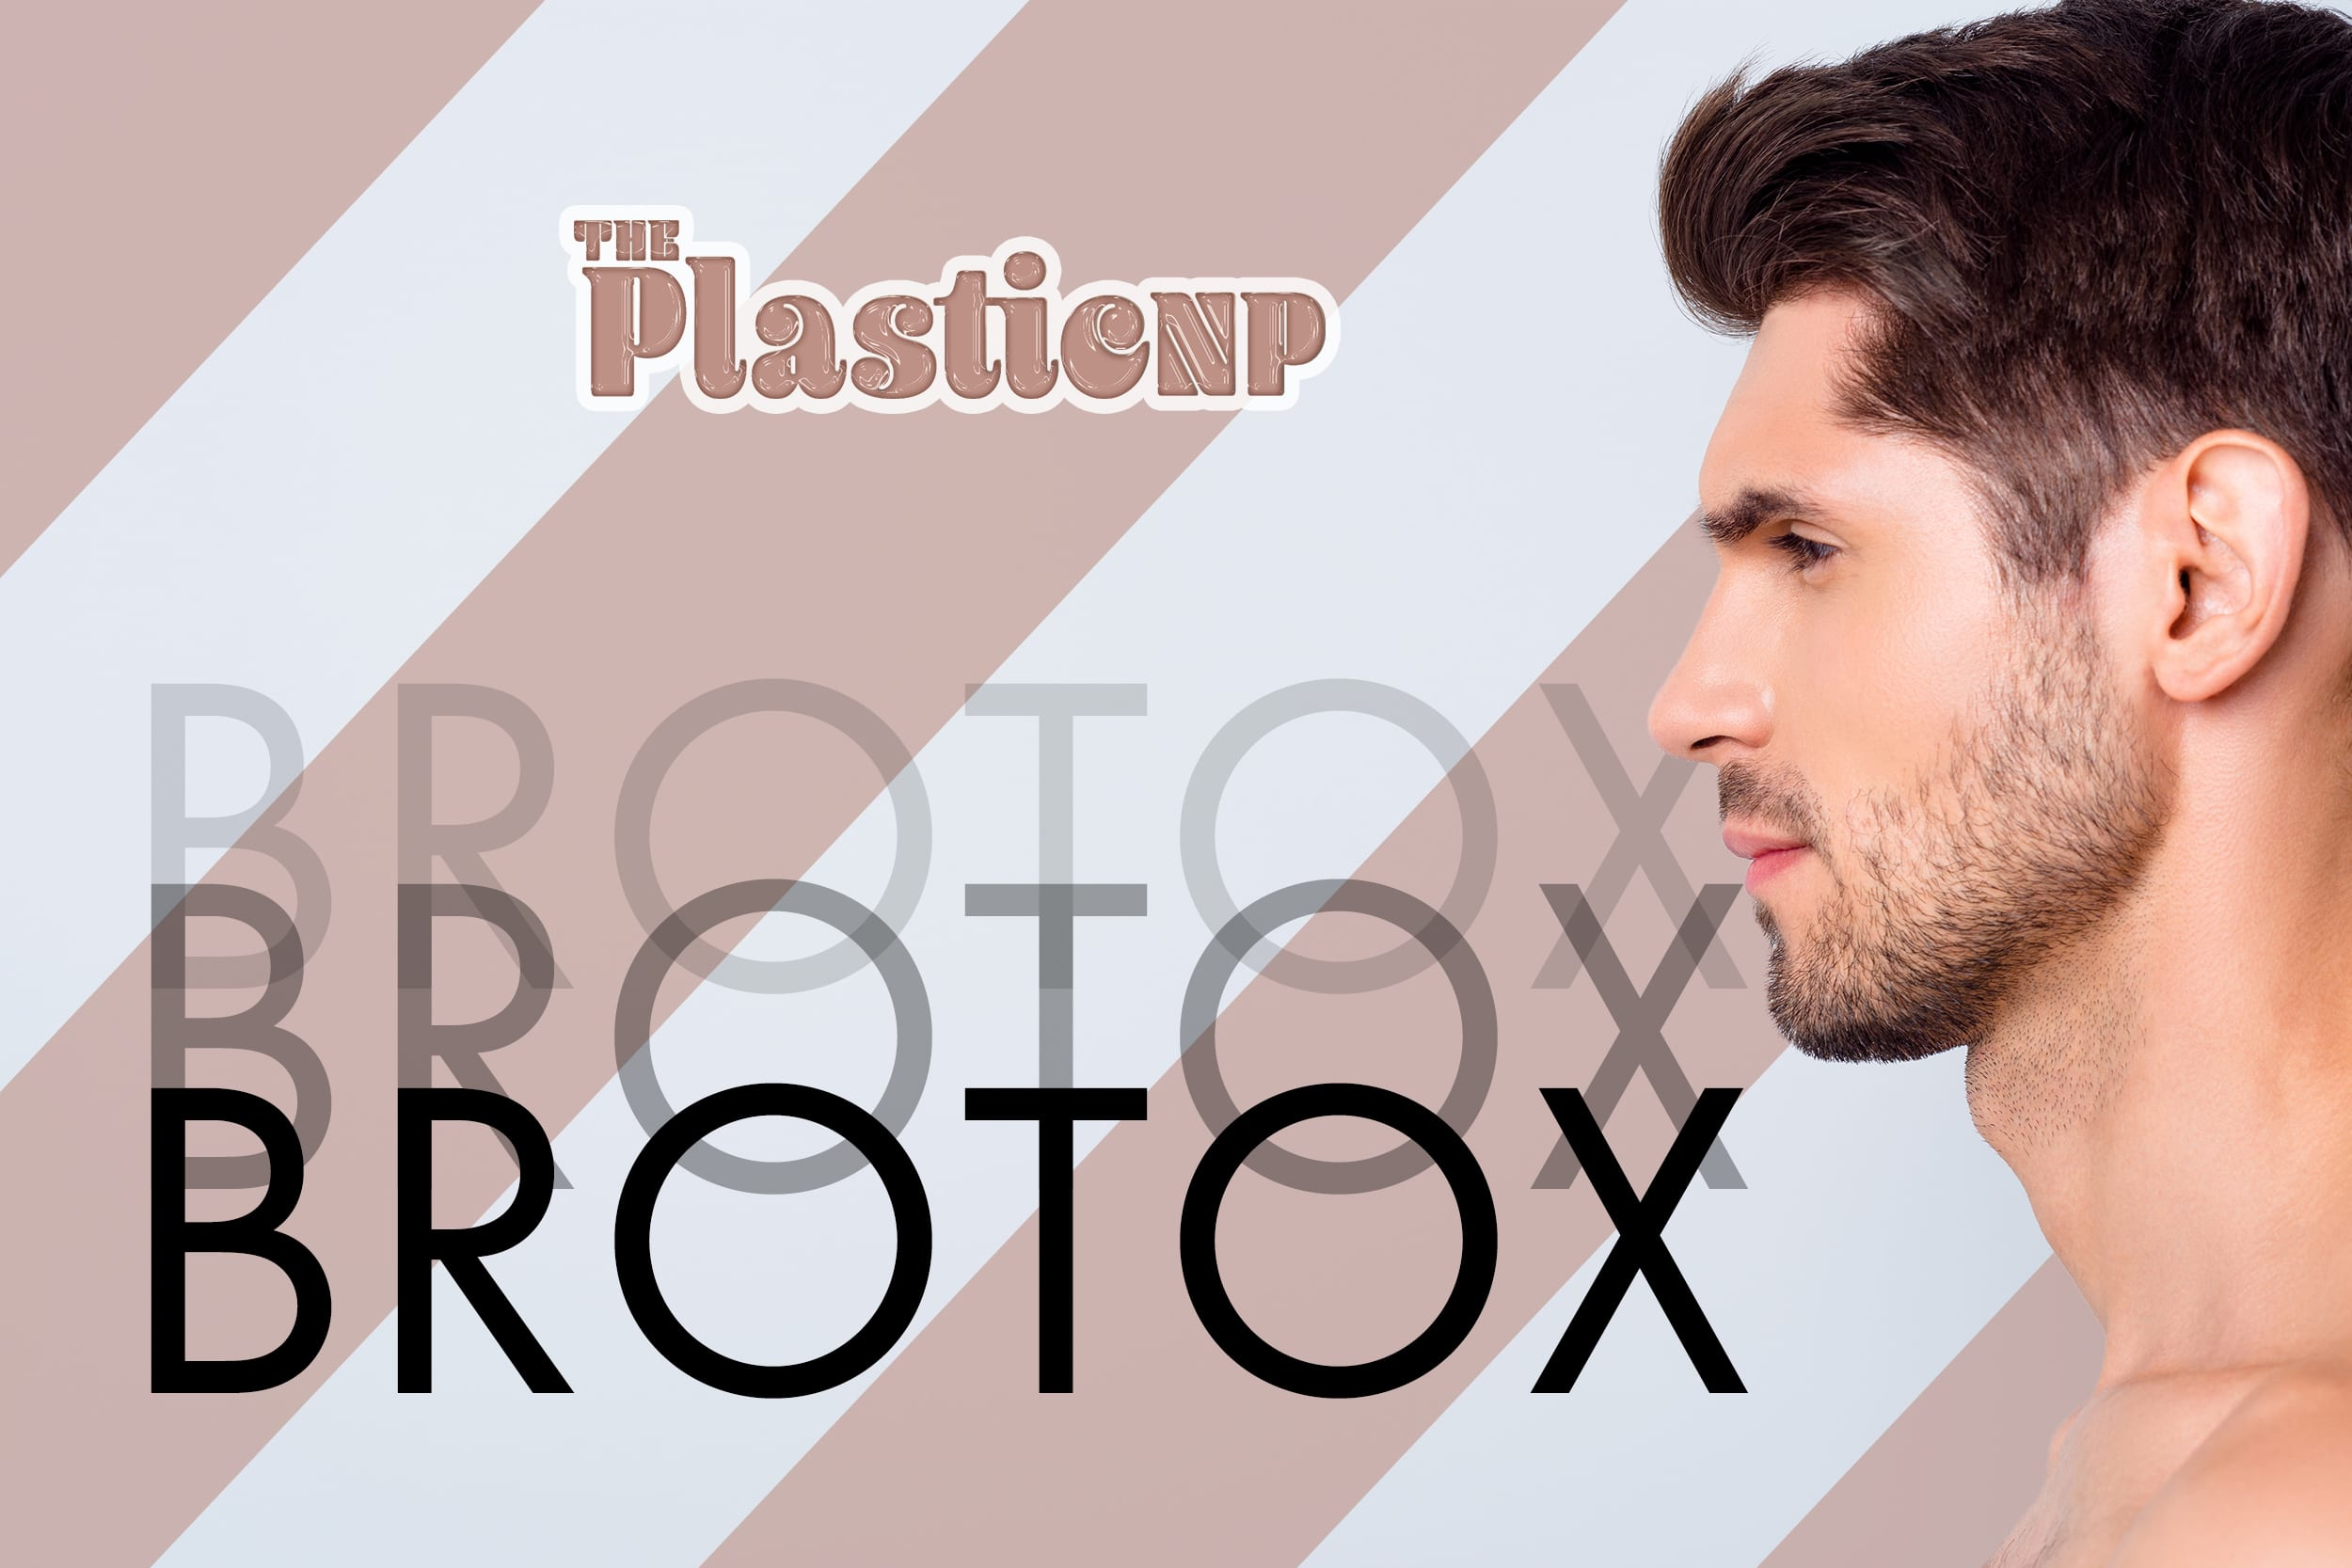 Botox for Men in Dallas, TX